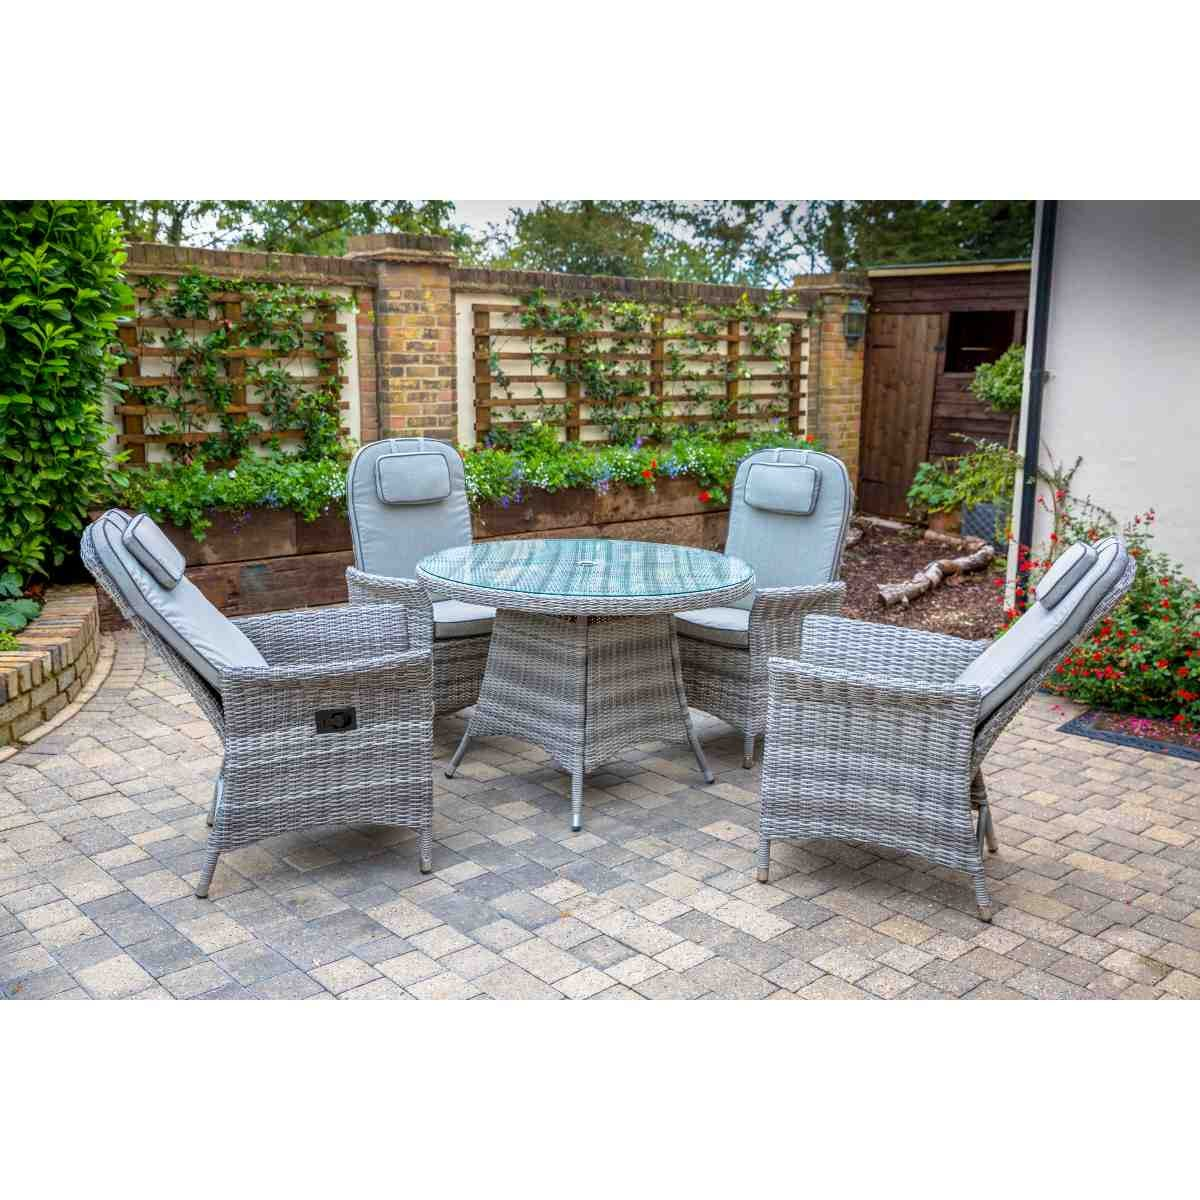 Katie Blake Flamingo 4 Reclining Chair Dining Set with 1.2m Round Table Parasol & Base - Grey / Blue